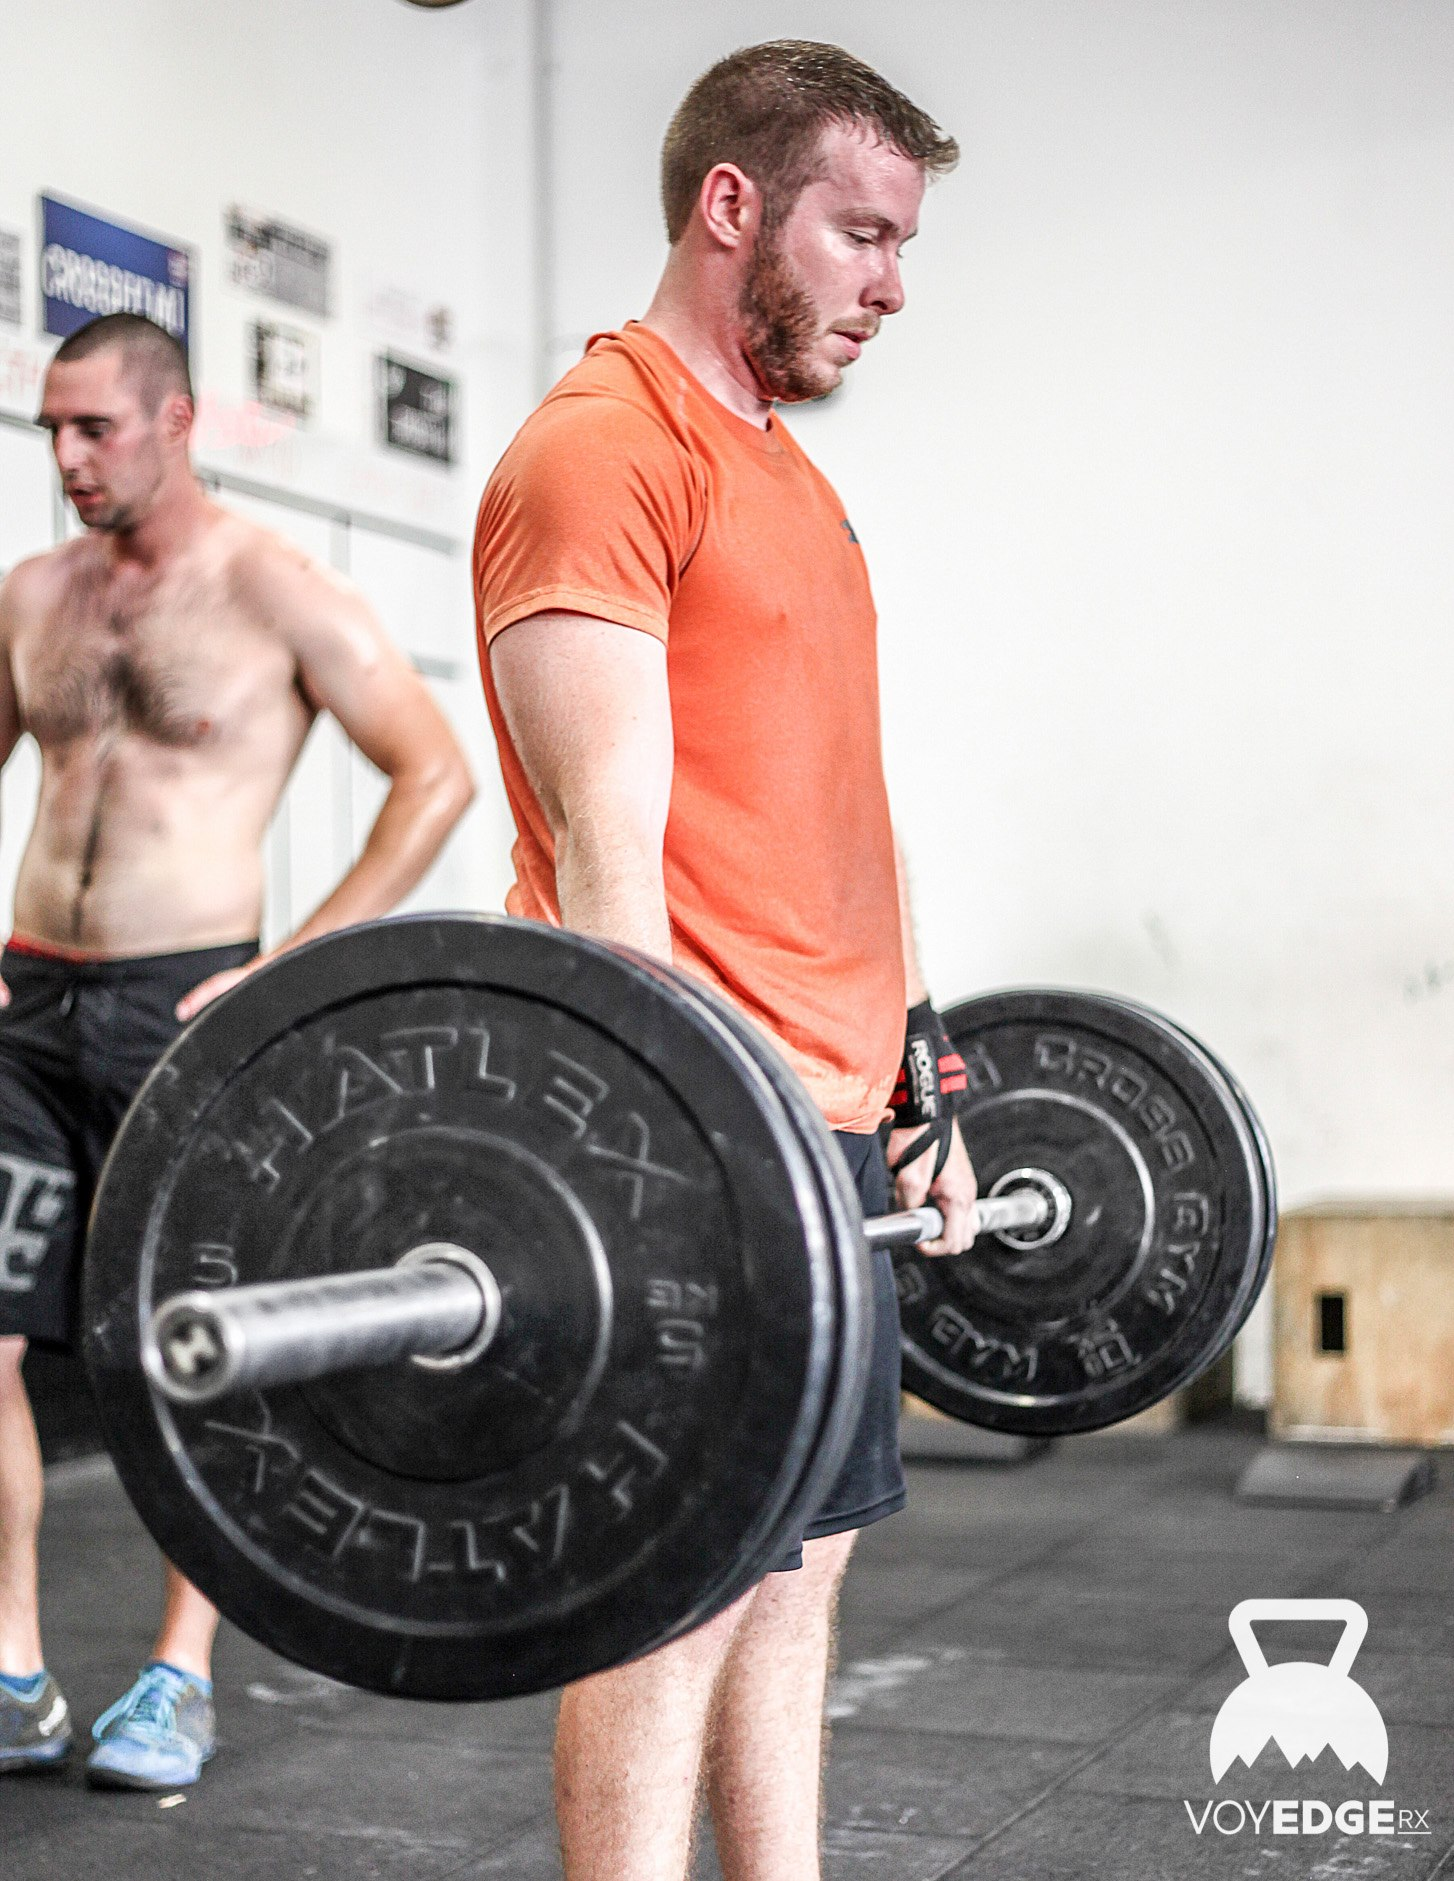 Jack Murphy at CrossFit M1 in Milan, Italy. Photo by: @squatsandpixels